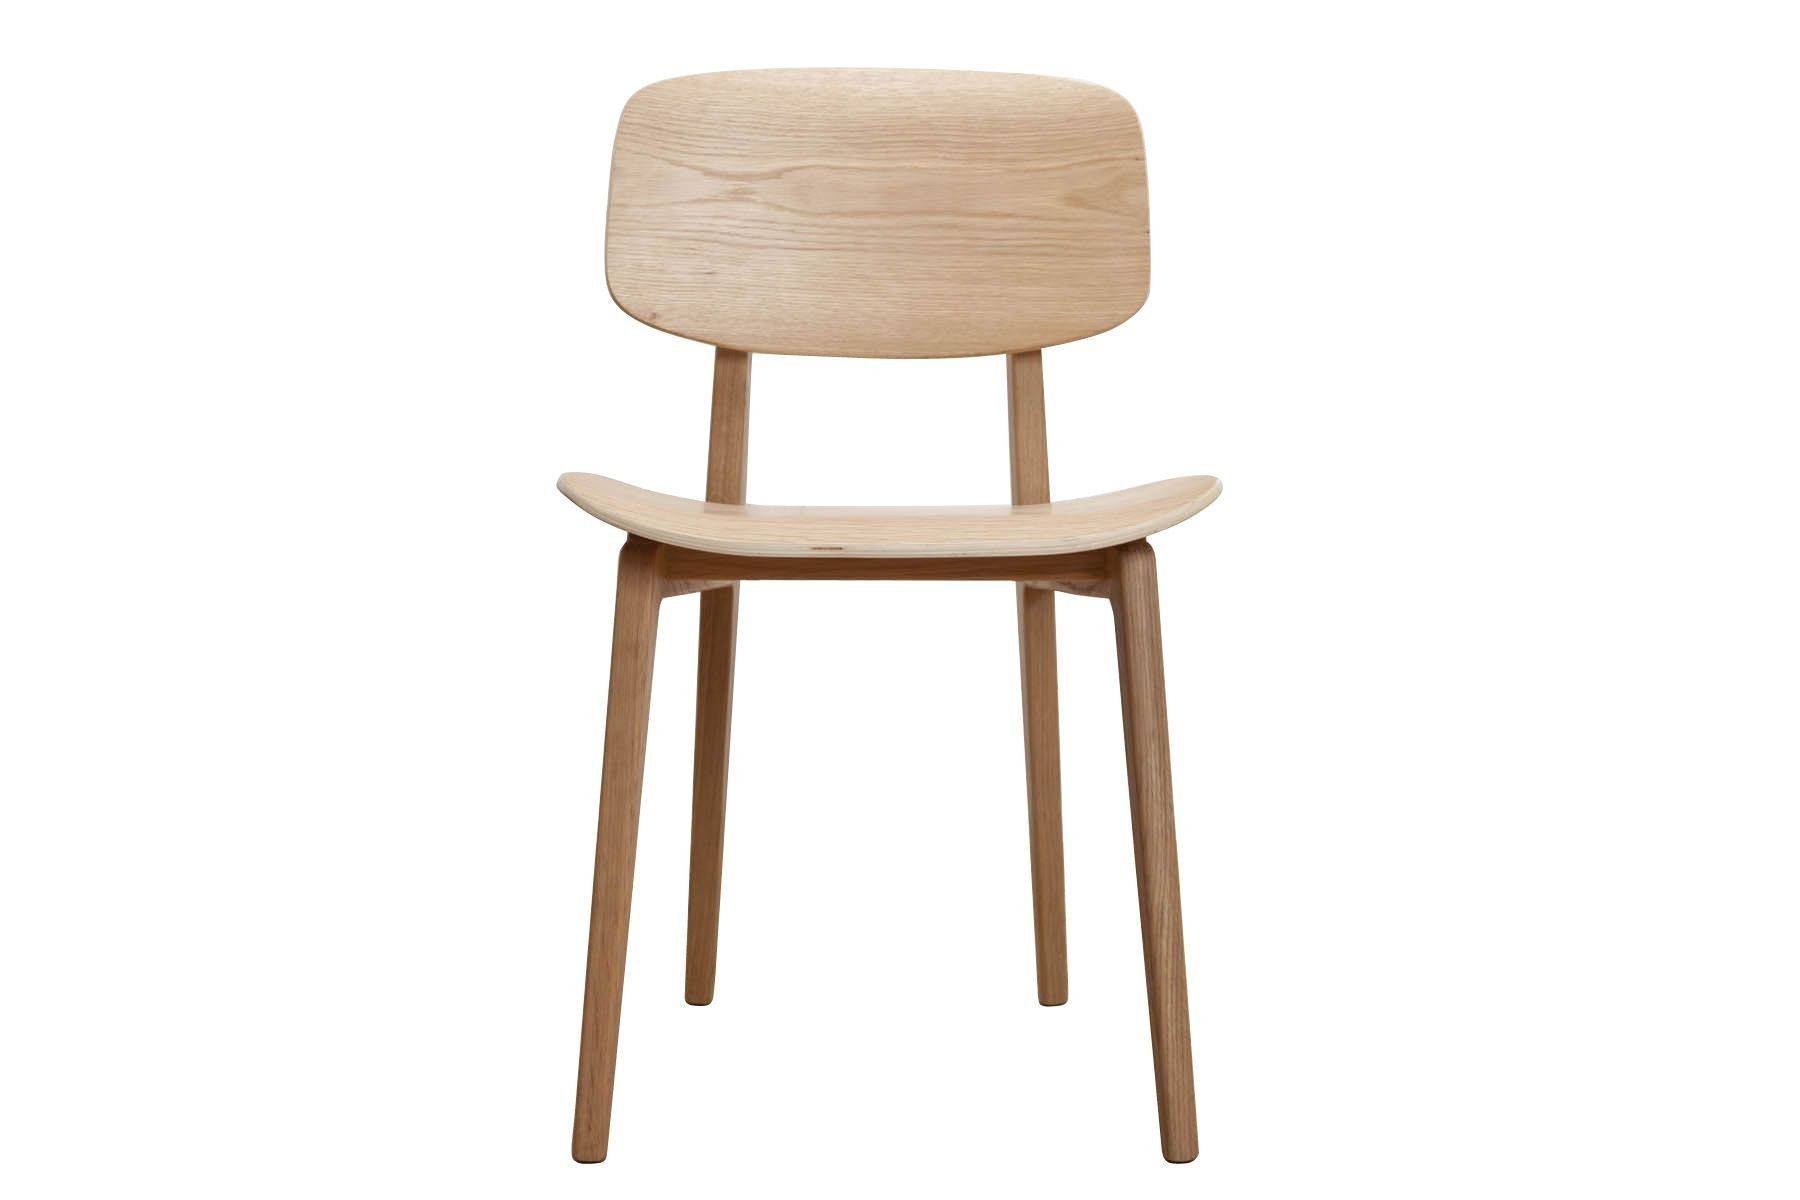 Esszimmer Stühle Stapelbar Norr11 Ny11 Dining Chair Kitchen In 2019 Stühle